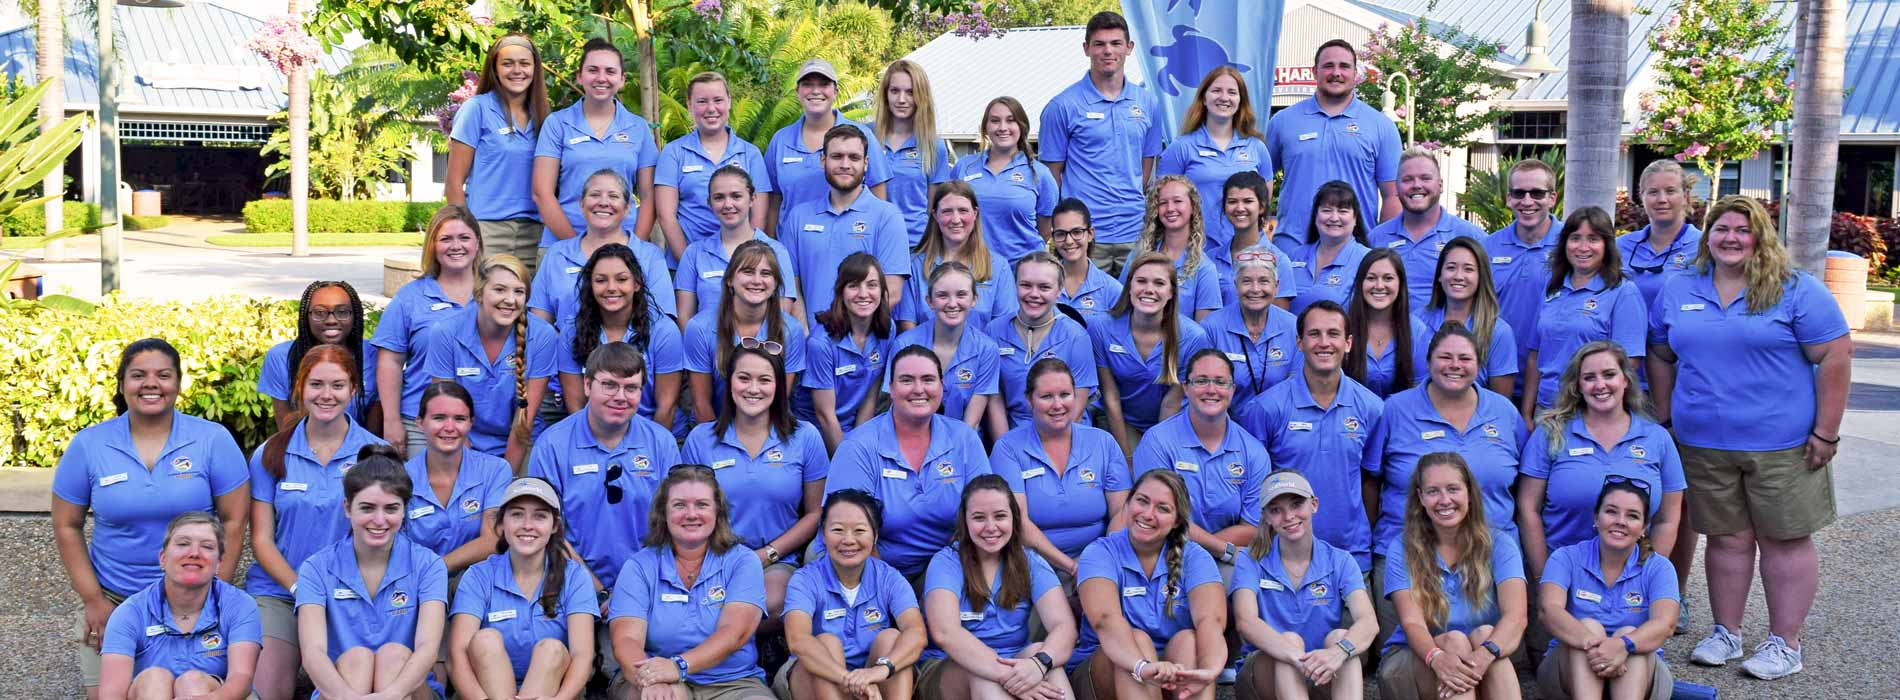 2019 SeaWorld Orlando Camp Counselors